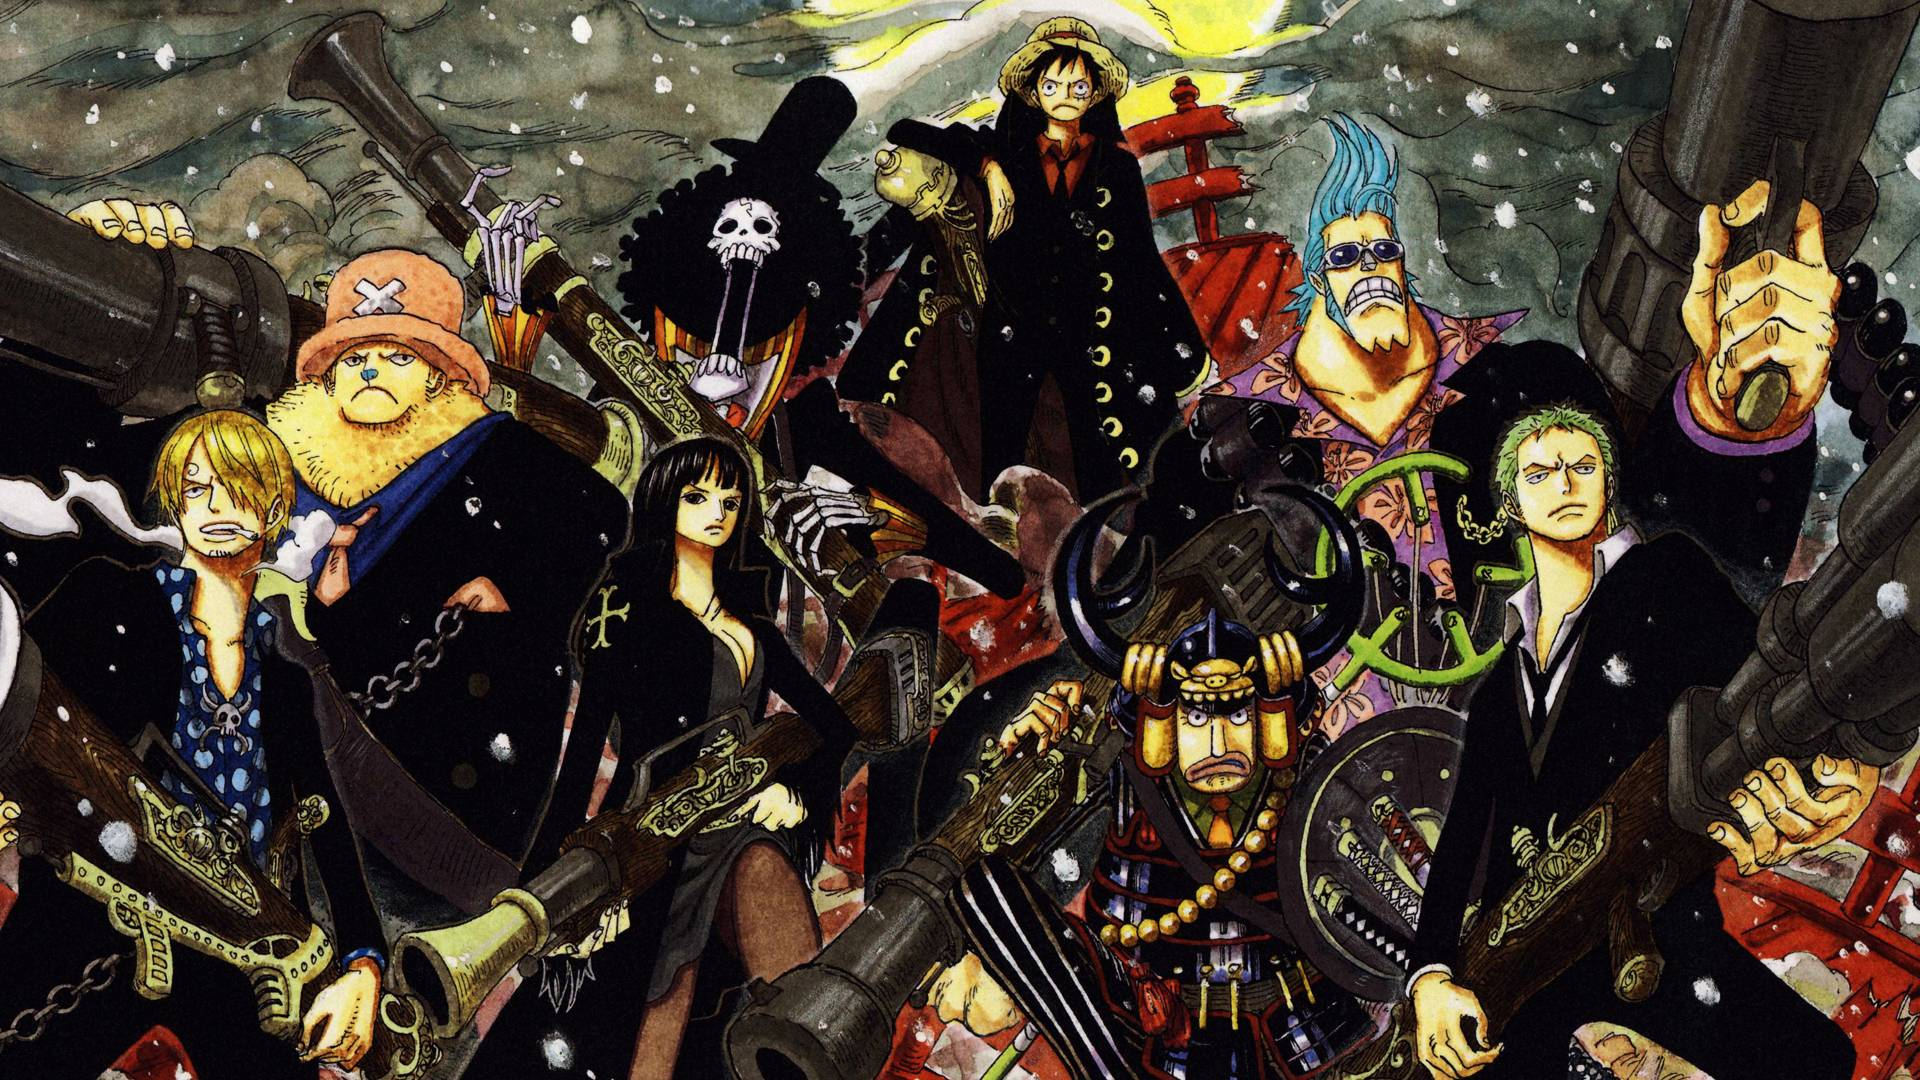 One Piece Wallpapers - One Piece Wallpaper For Ps4 - HD Wallpaper